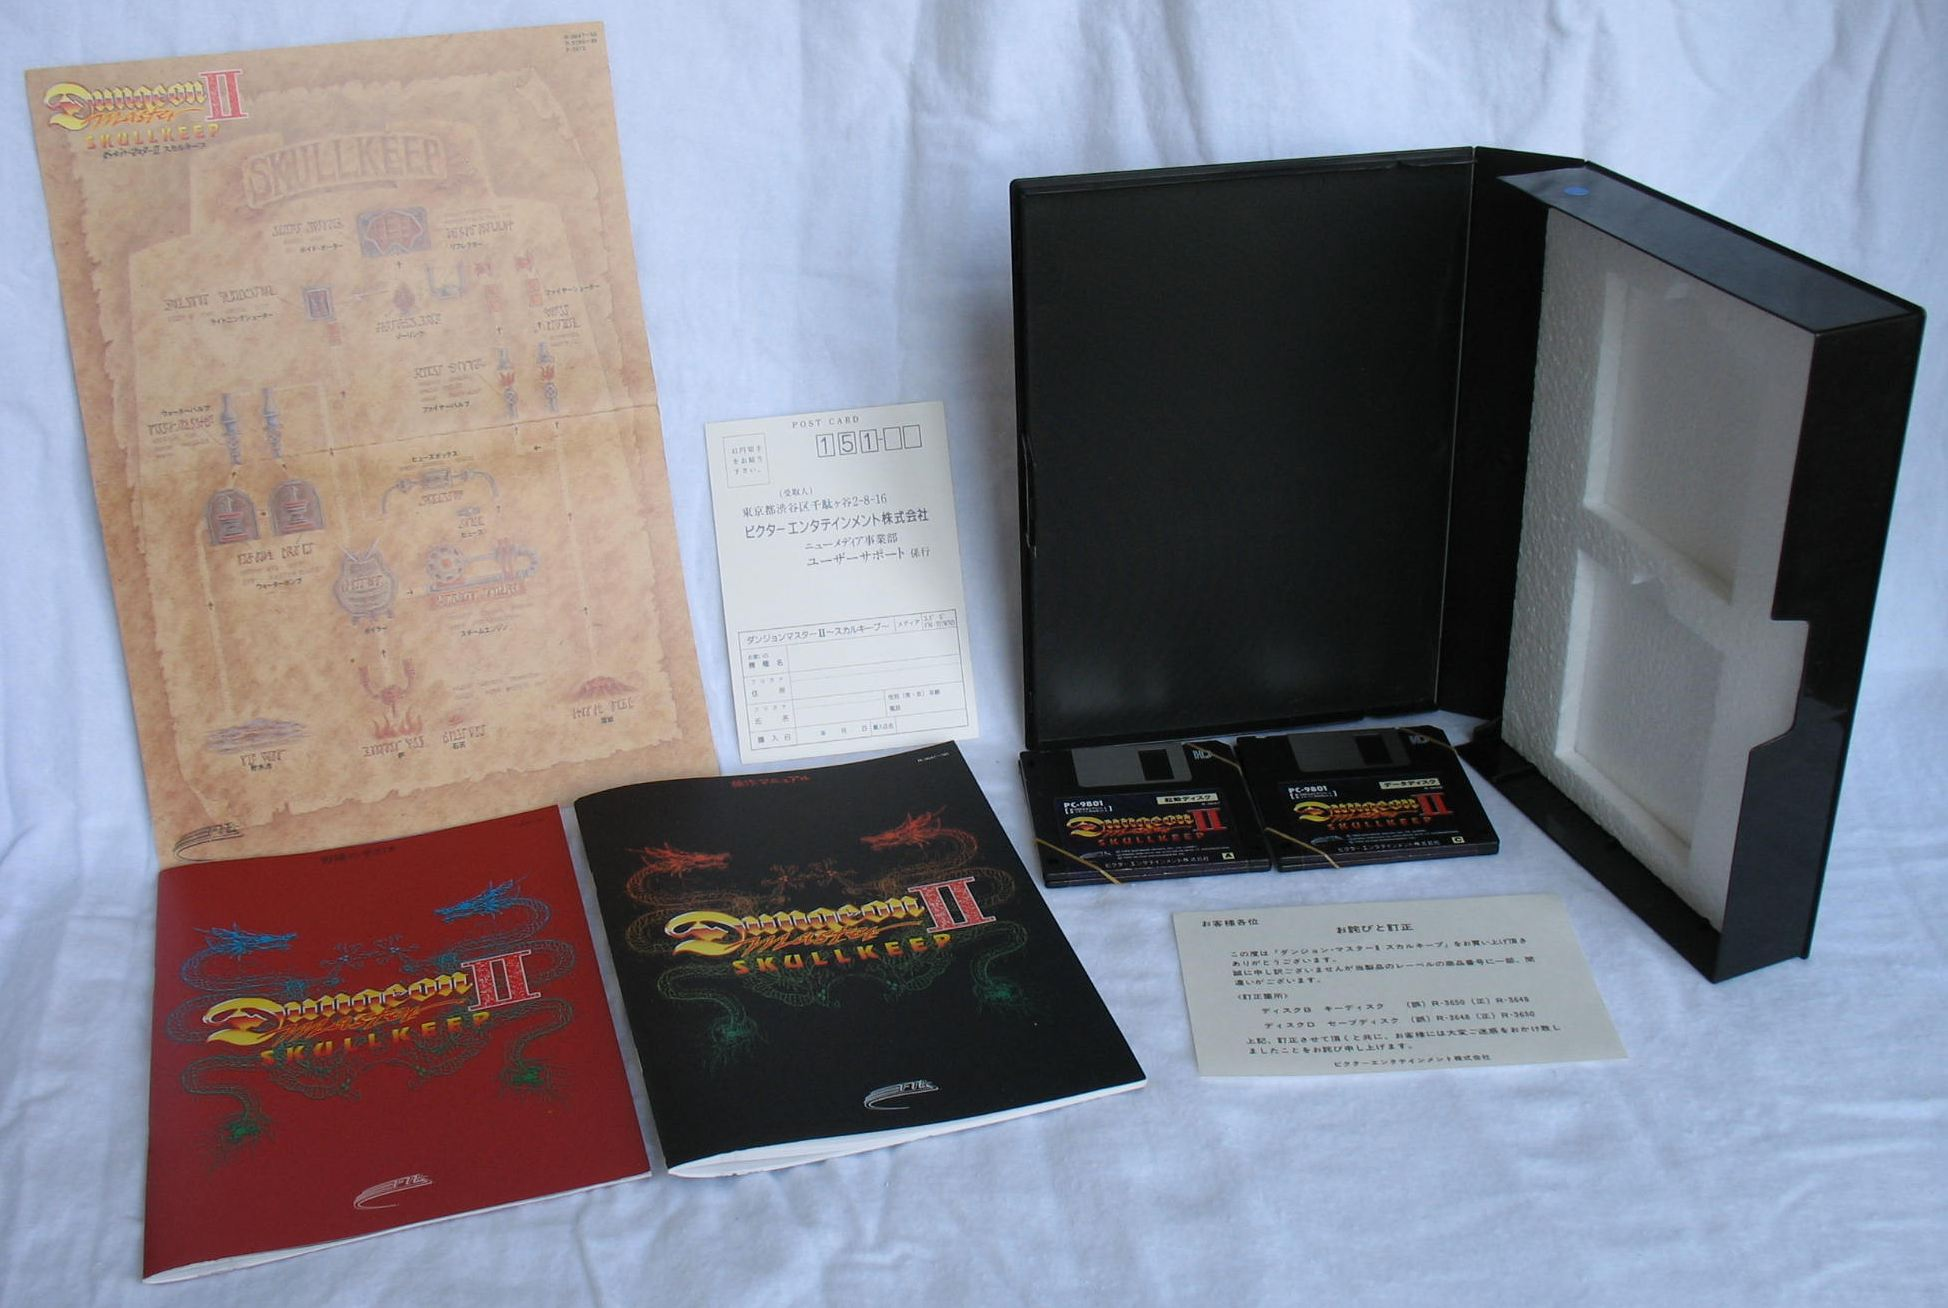 Game - Dungeon Master II - JP - PC-9801 - 3.5-inch - All - Overview - Photo